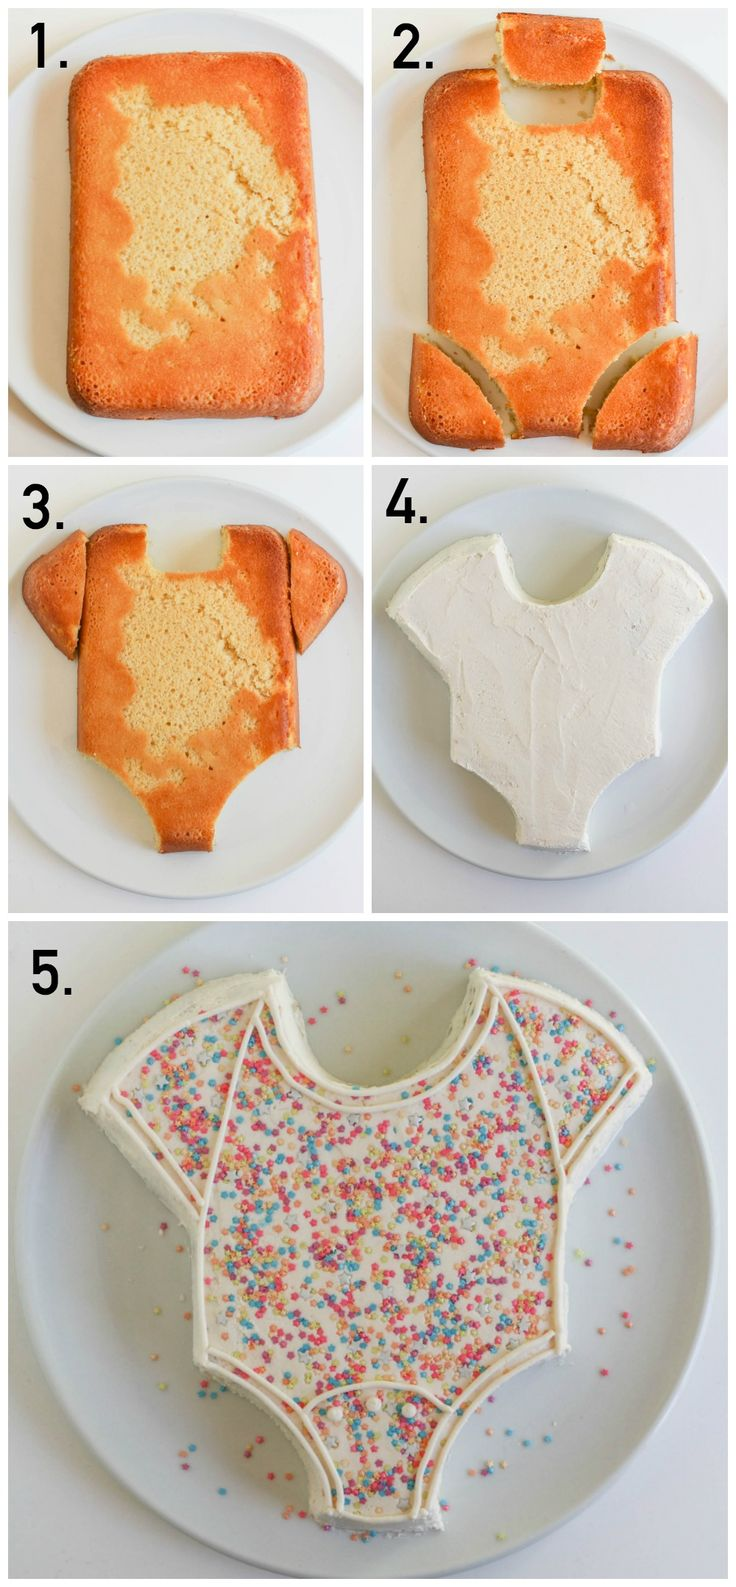 Best Simple Cake Decorating Ideas On Pinterest Simple Cakes - Homemade cake decorating ideas